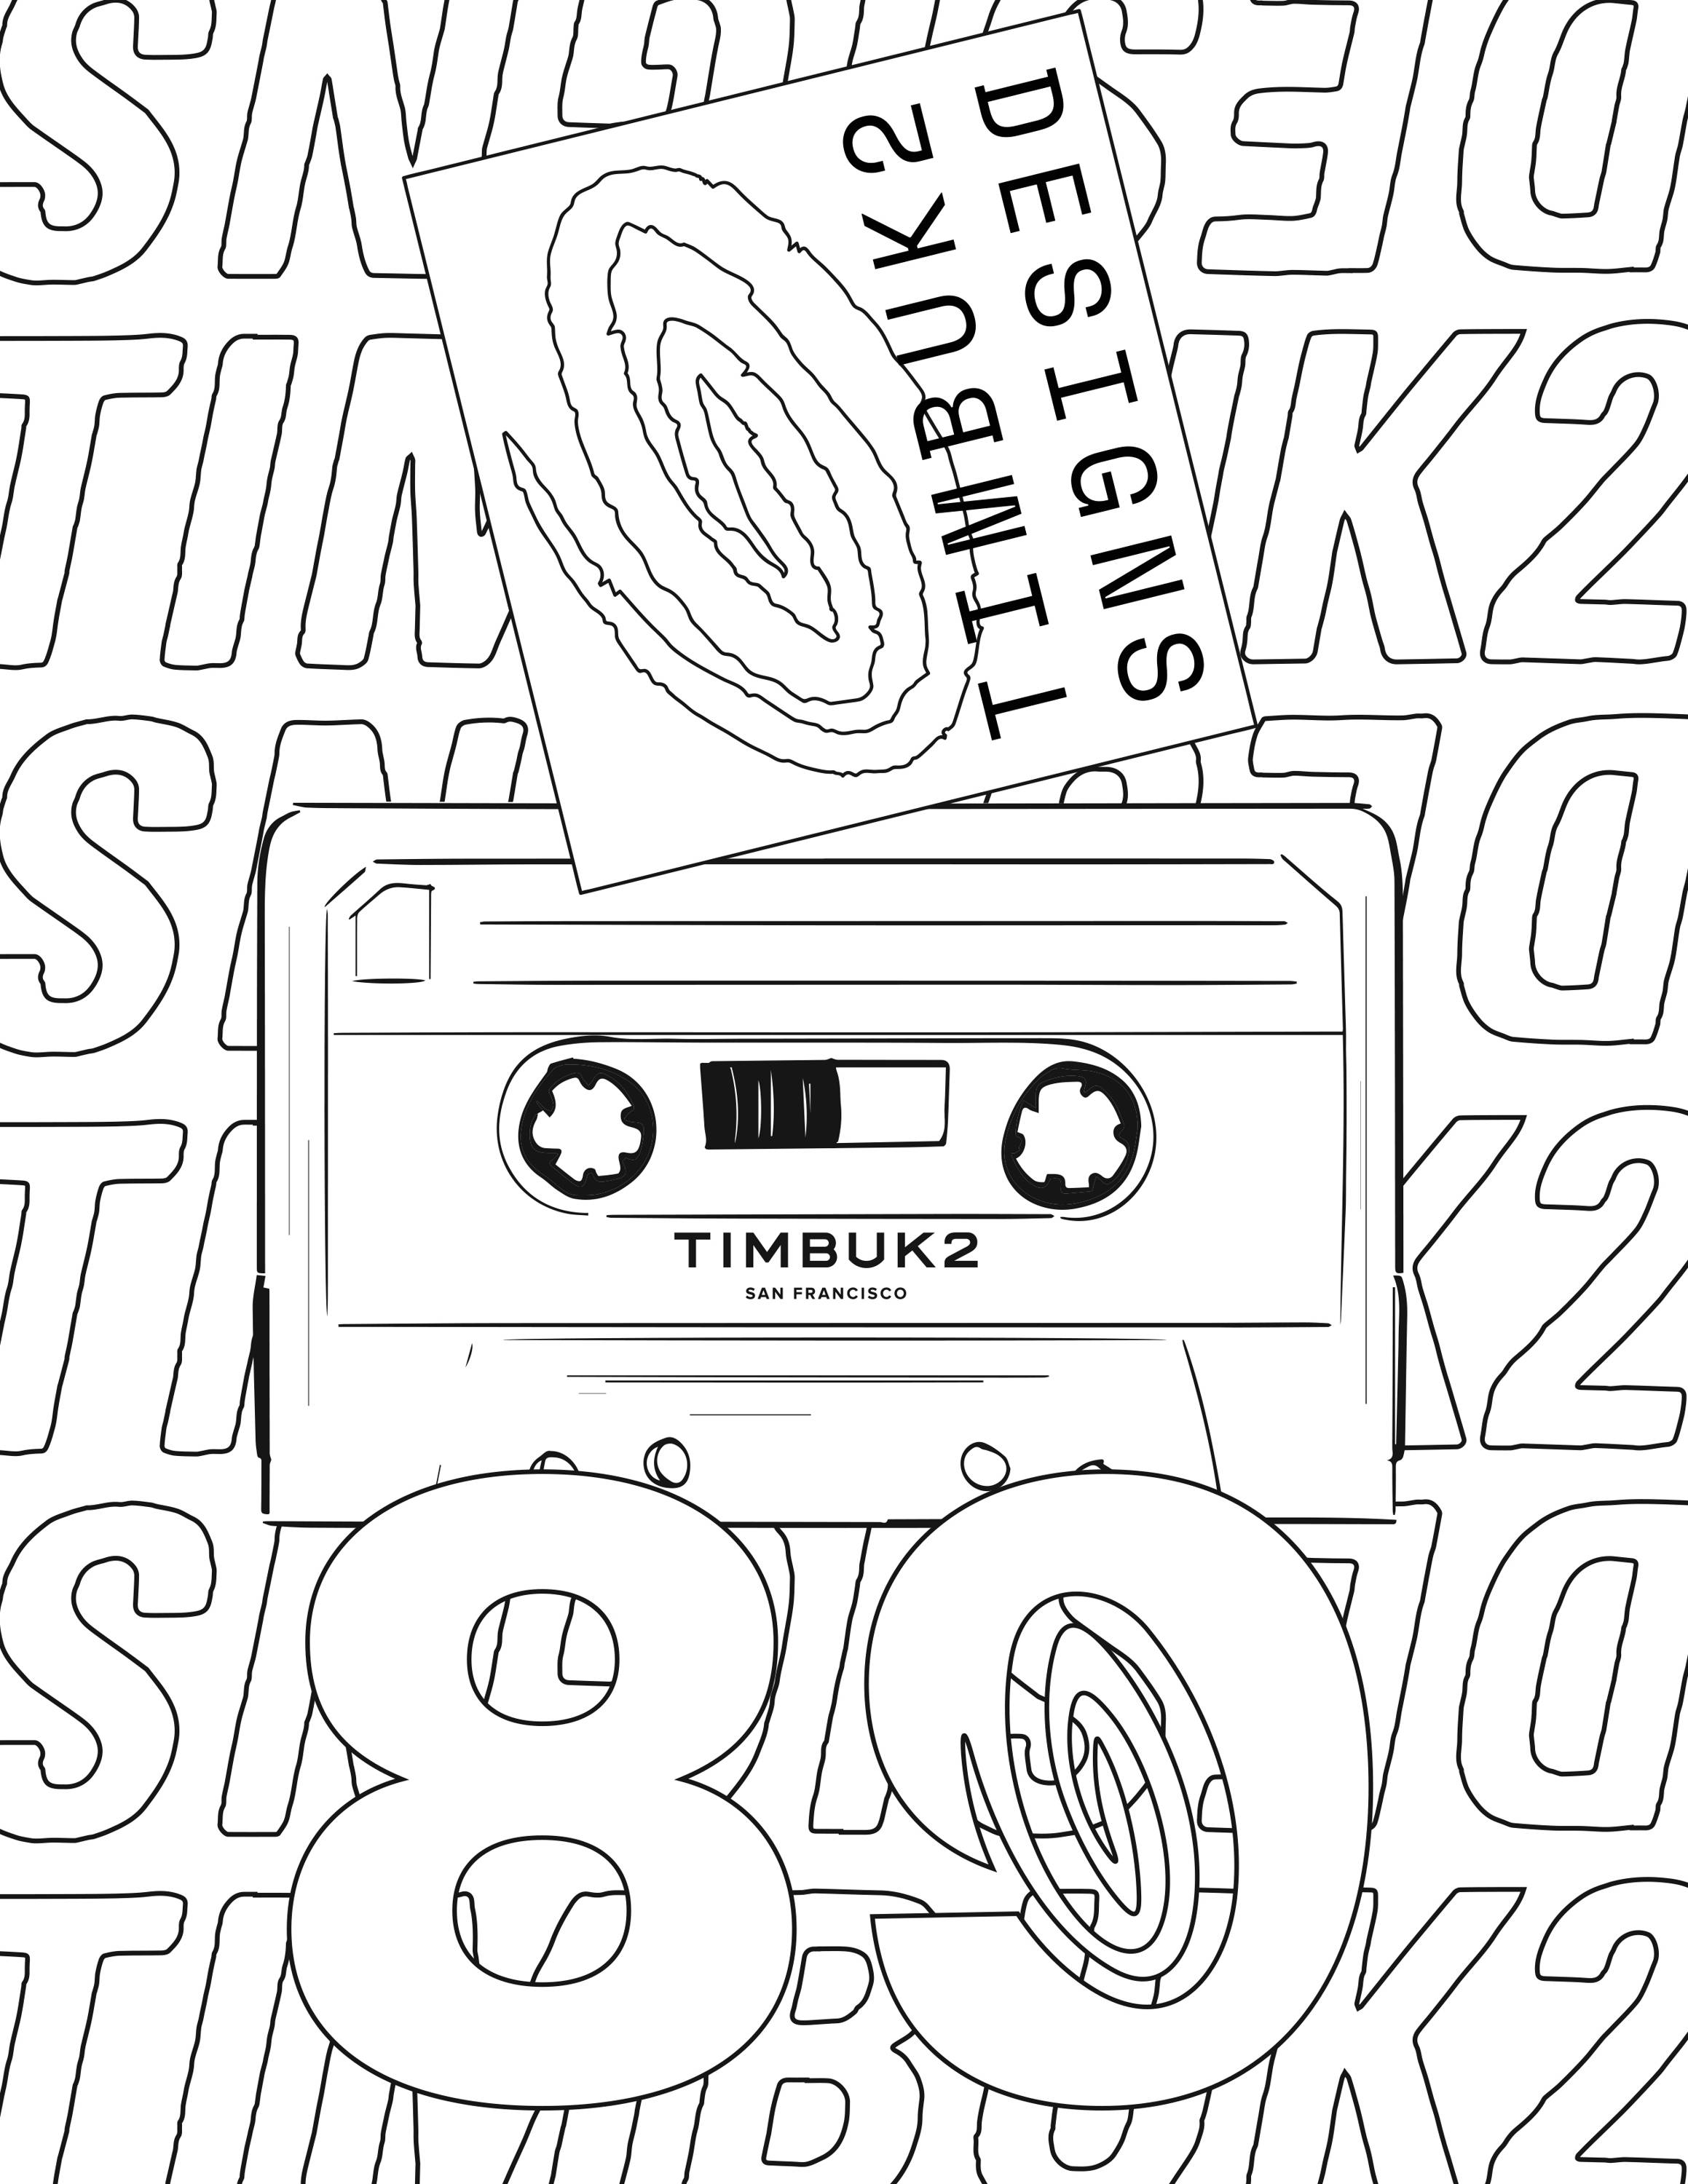 Black and white outline of a cassete tape, the number 80 and the Timbuk2 designs logo. Timbuk2 designs is repeated in the background in all caps.